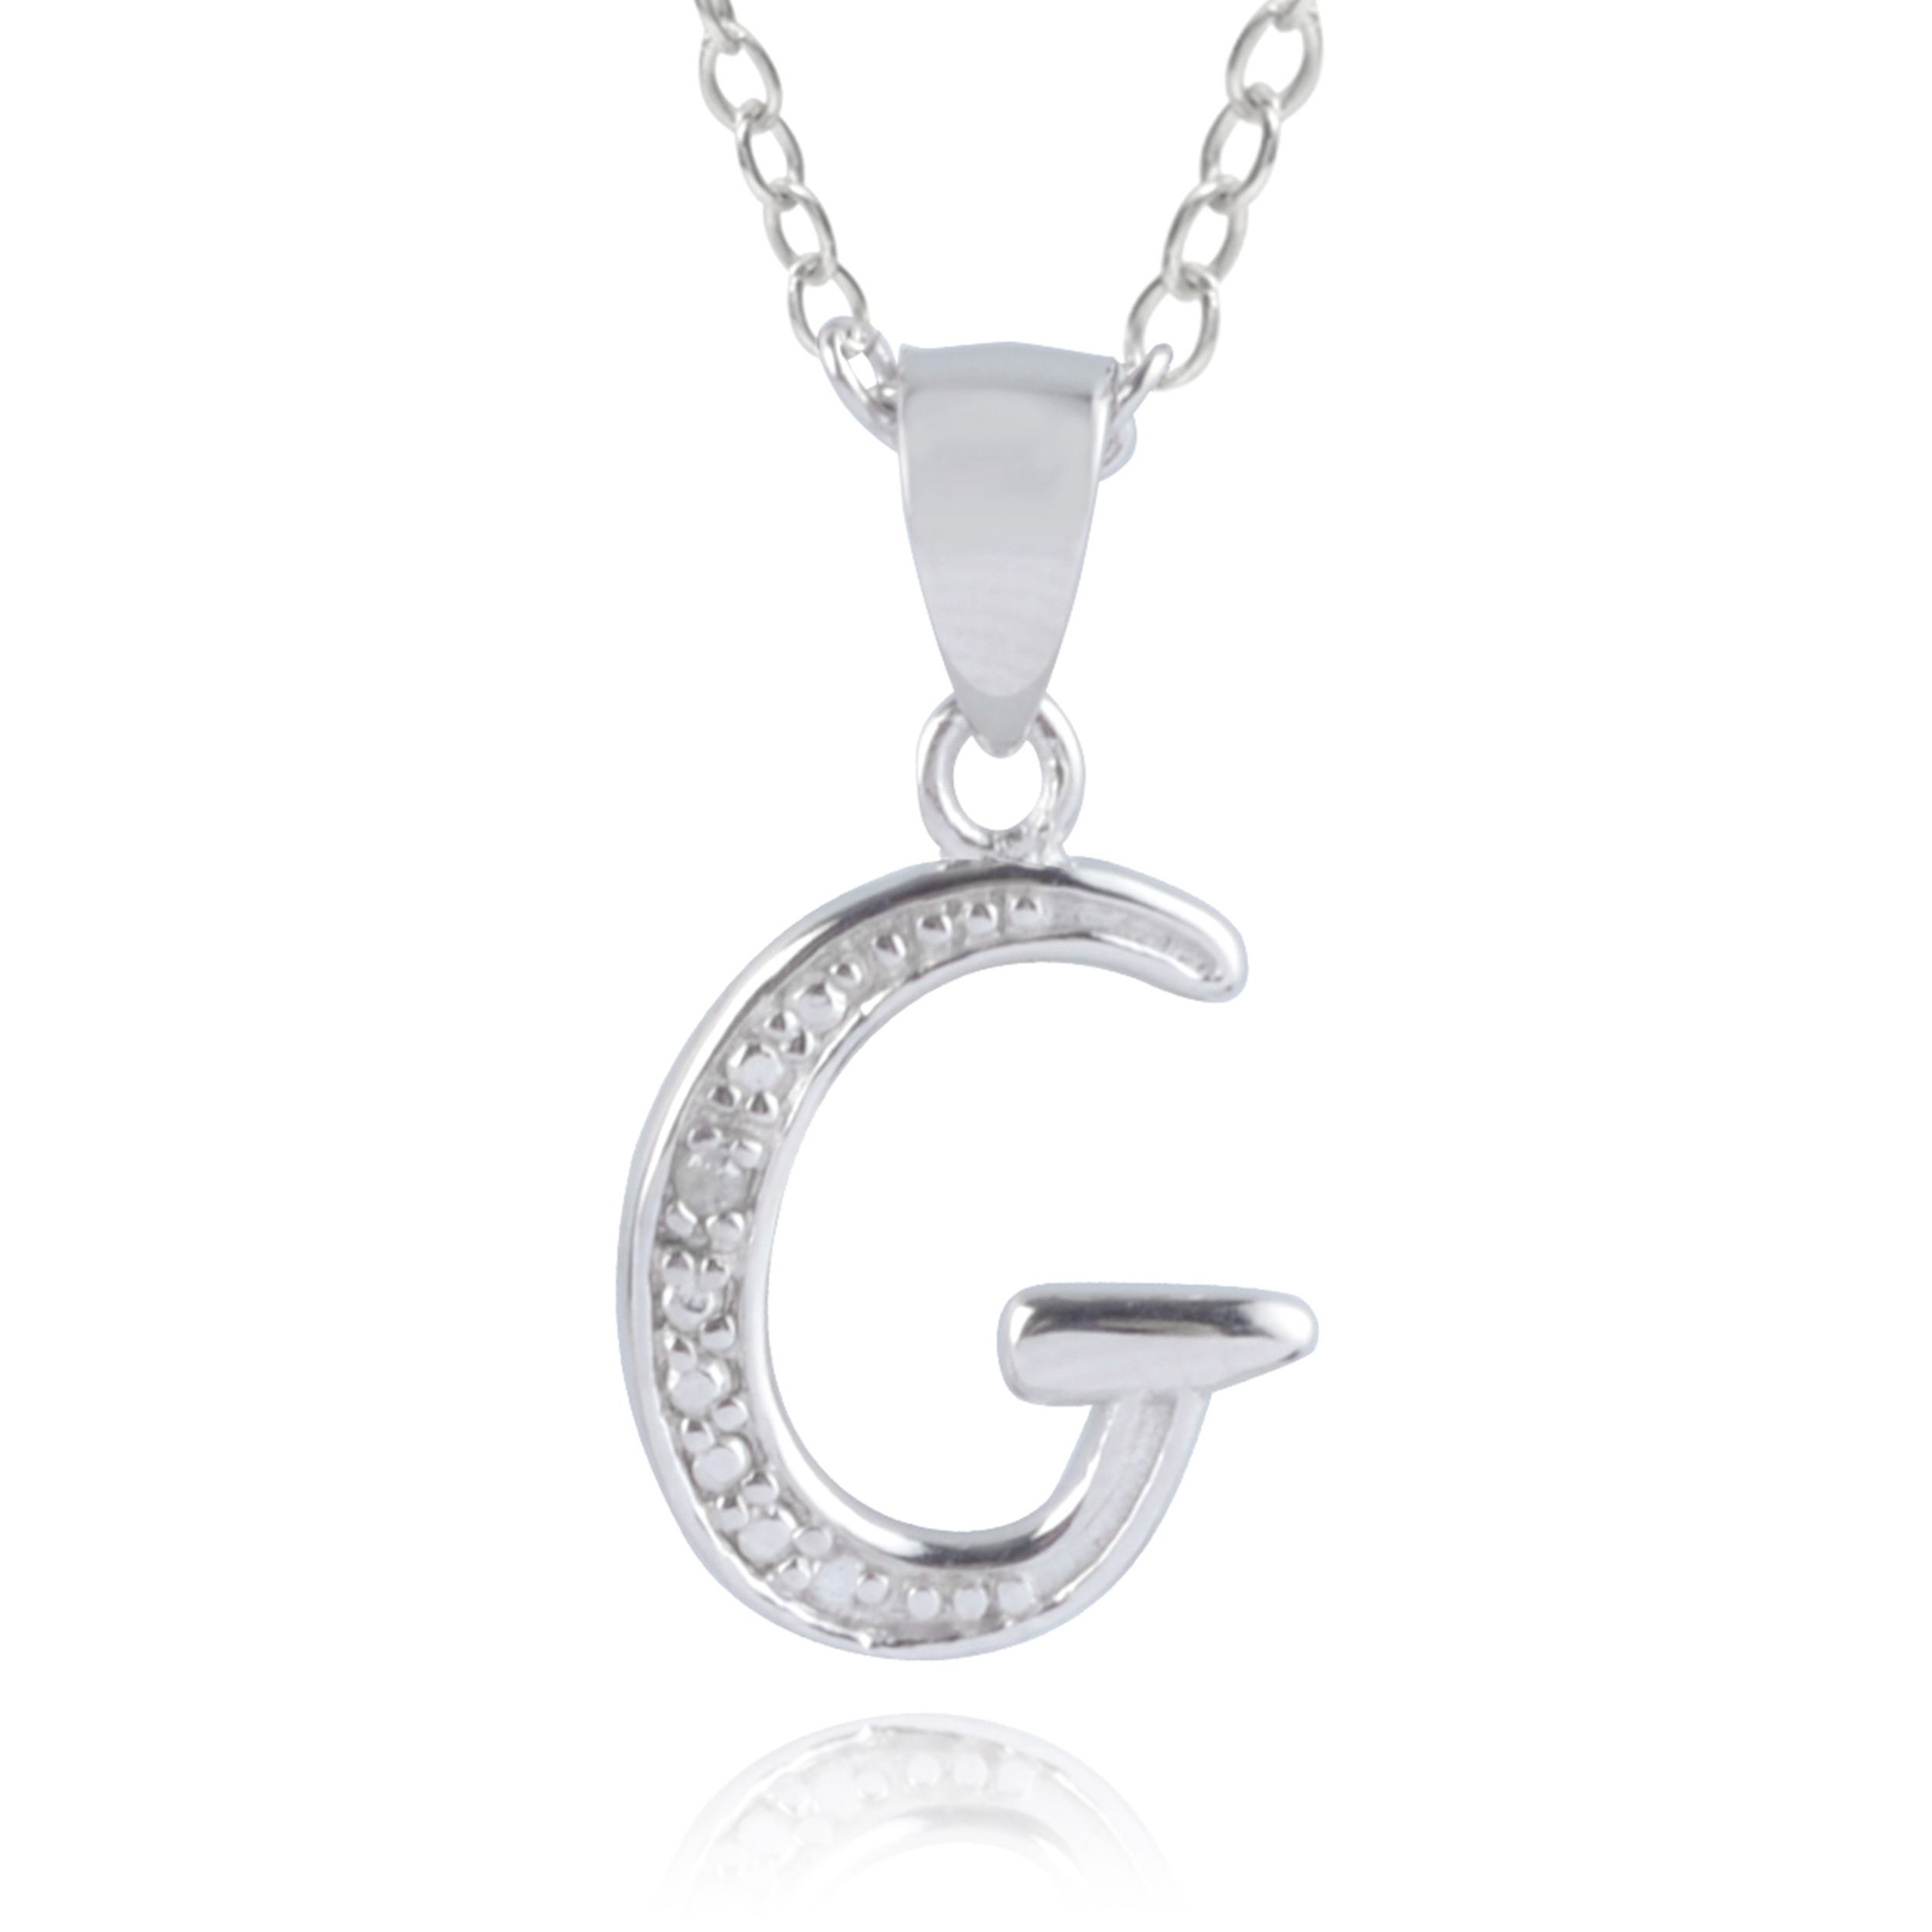 g steel pendant letter necklace products metro stainless jewelry